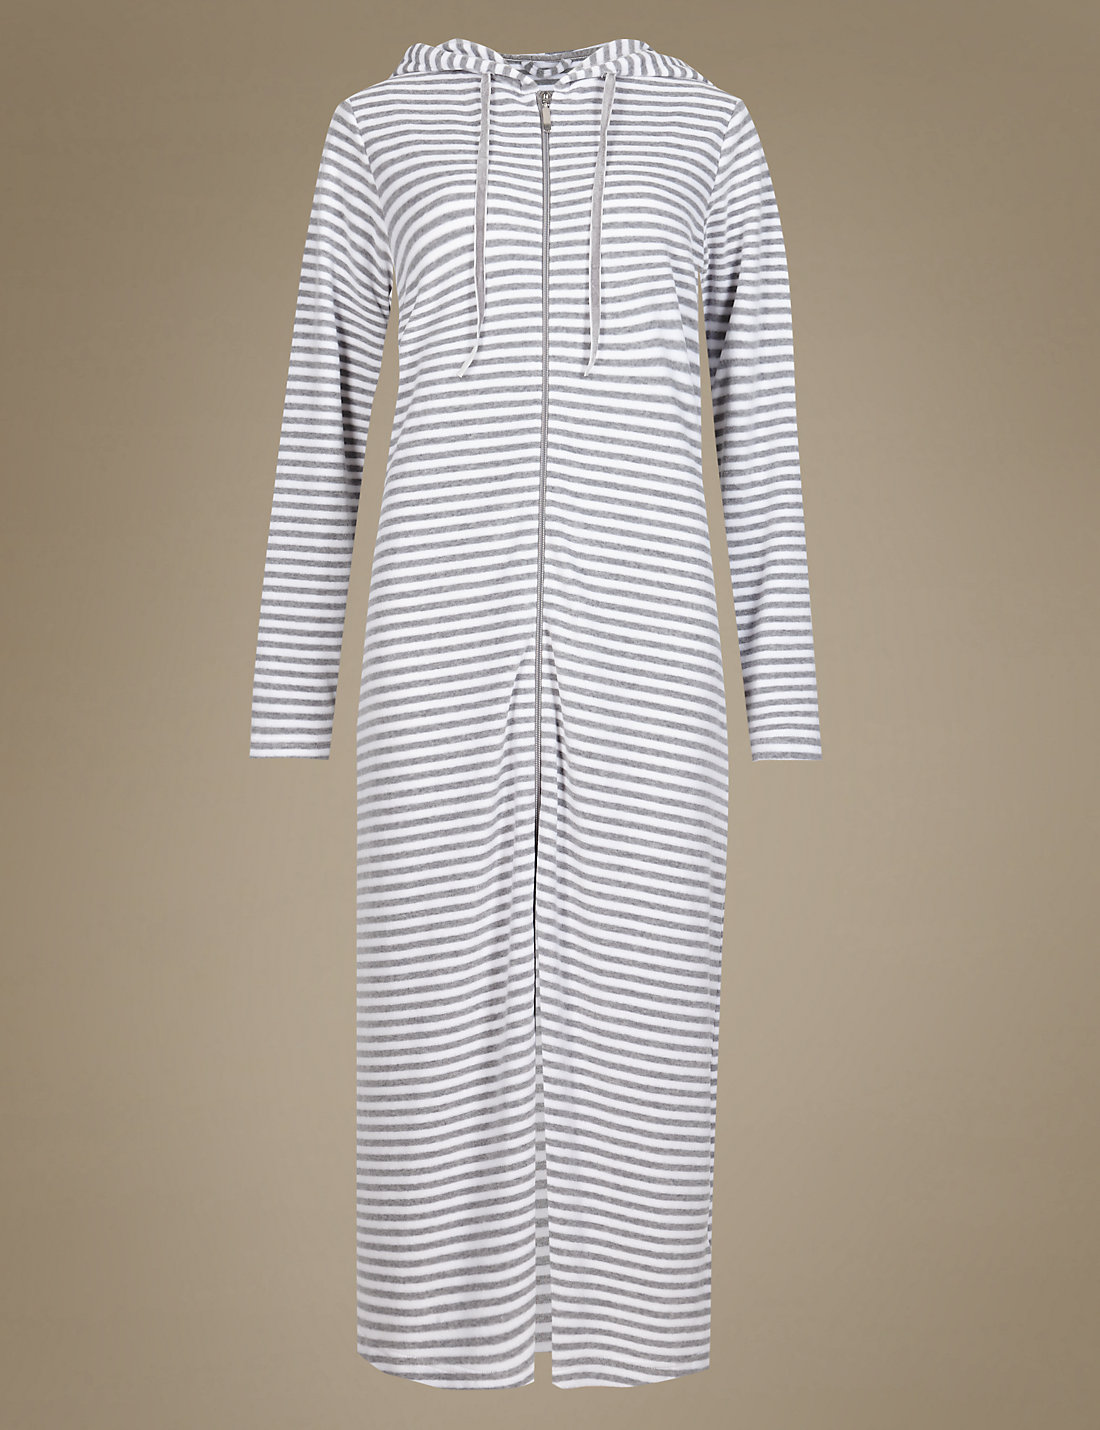 Zip Front Dressing Gown Uk - Dress Foto and Picture fd3a7e9f9